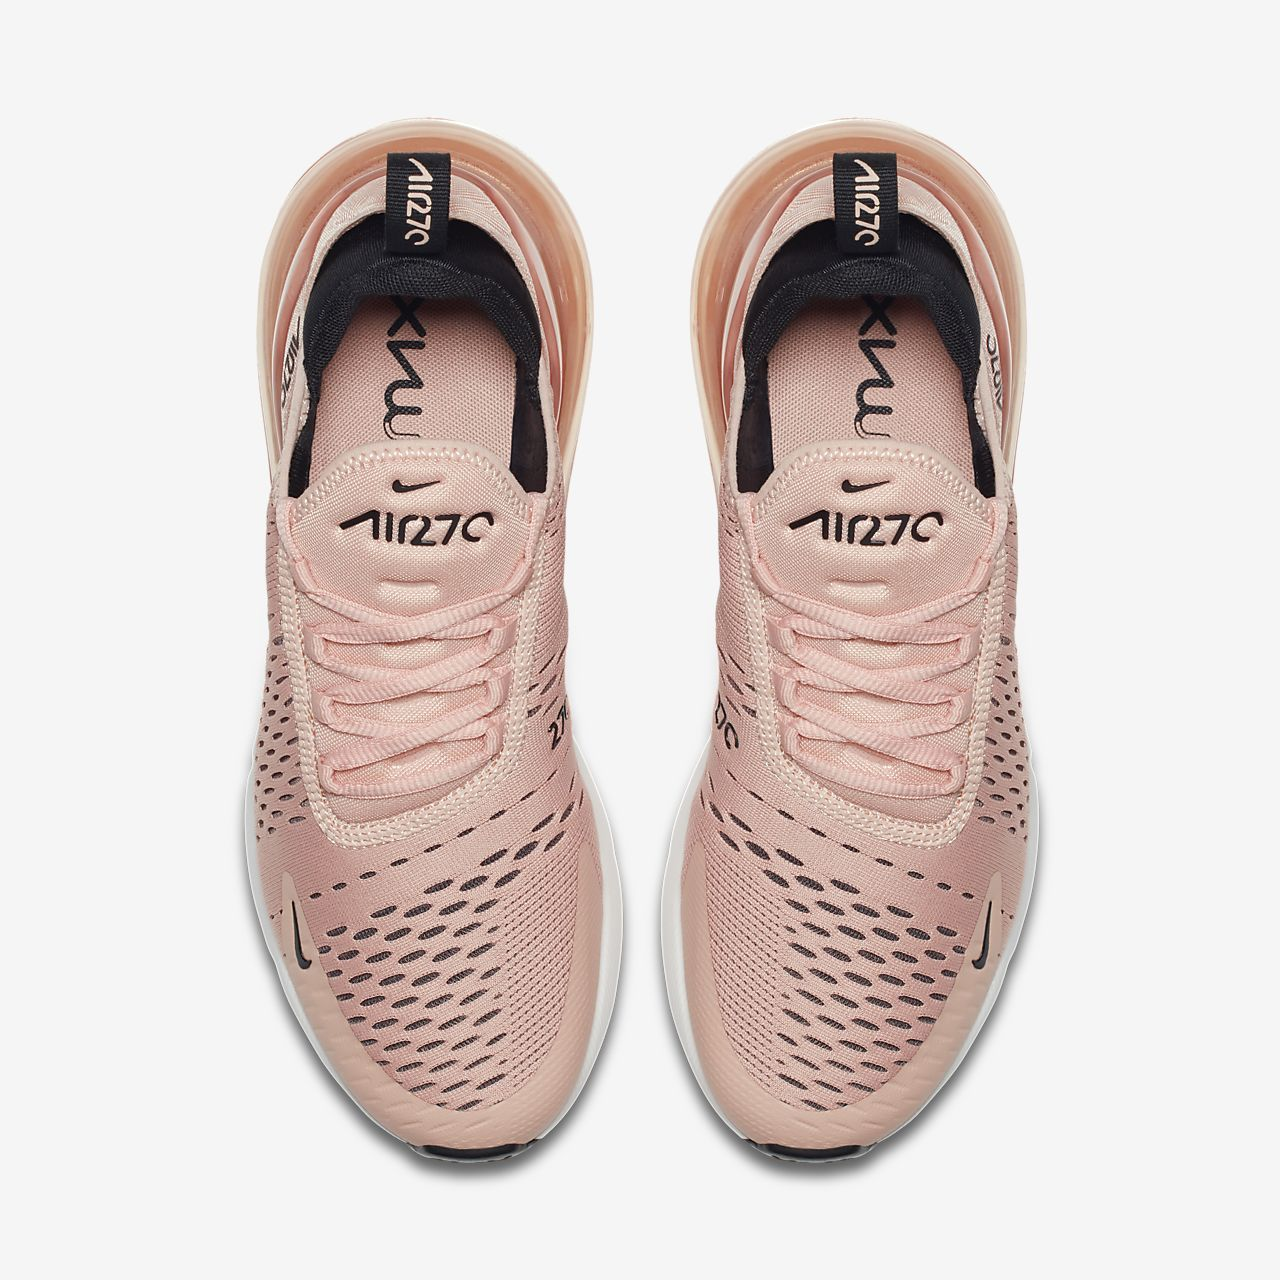 Air Max 270 Women S Shoe Womens Gym Shoes Gym Shoes Outfit Nike Air Max